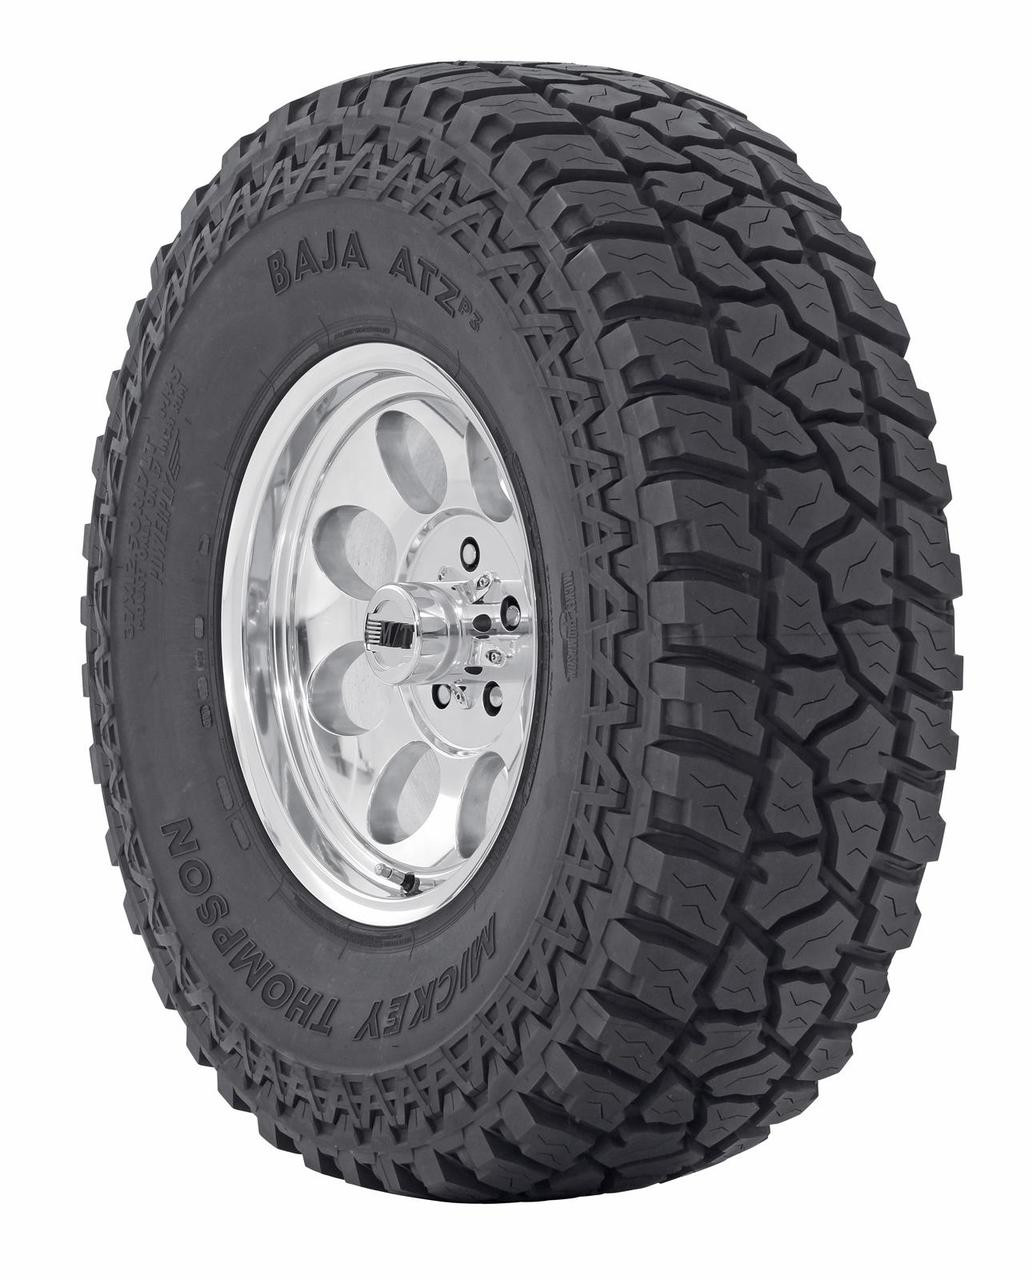 Mickey Thompson Baja ATZ P3 Tires 55532 90000001912